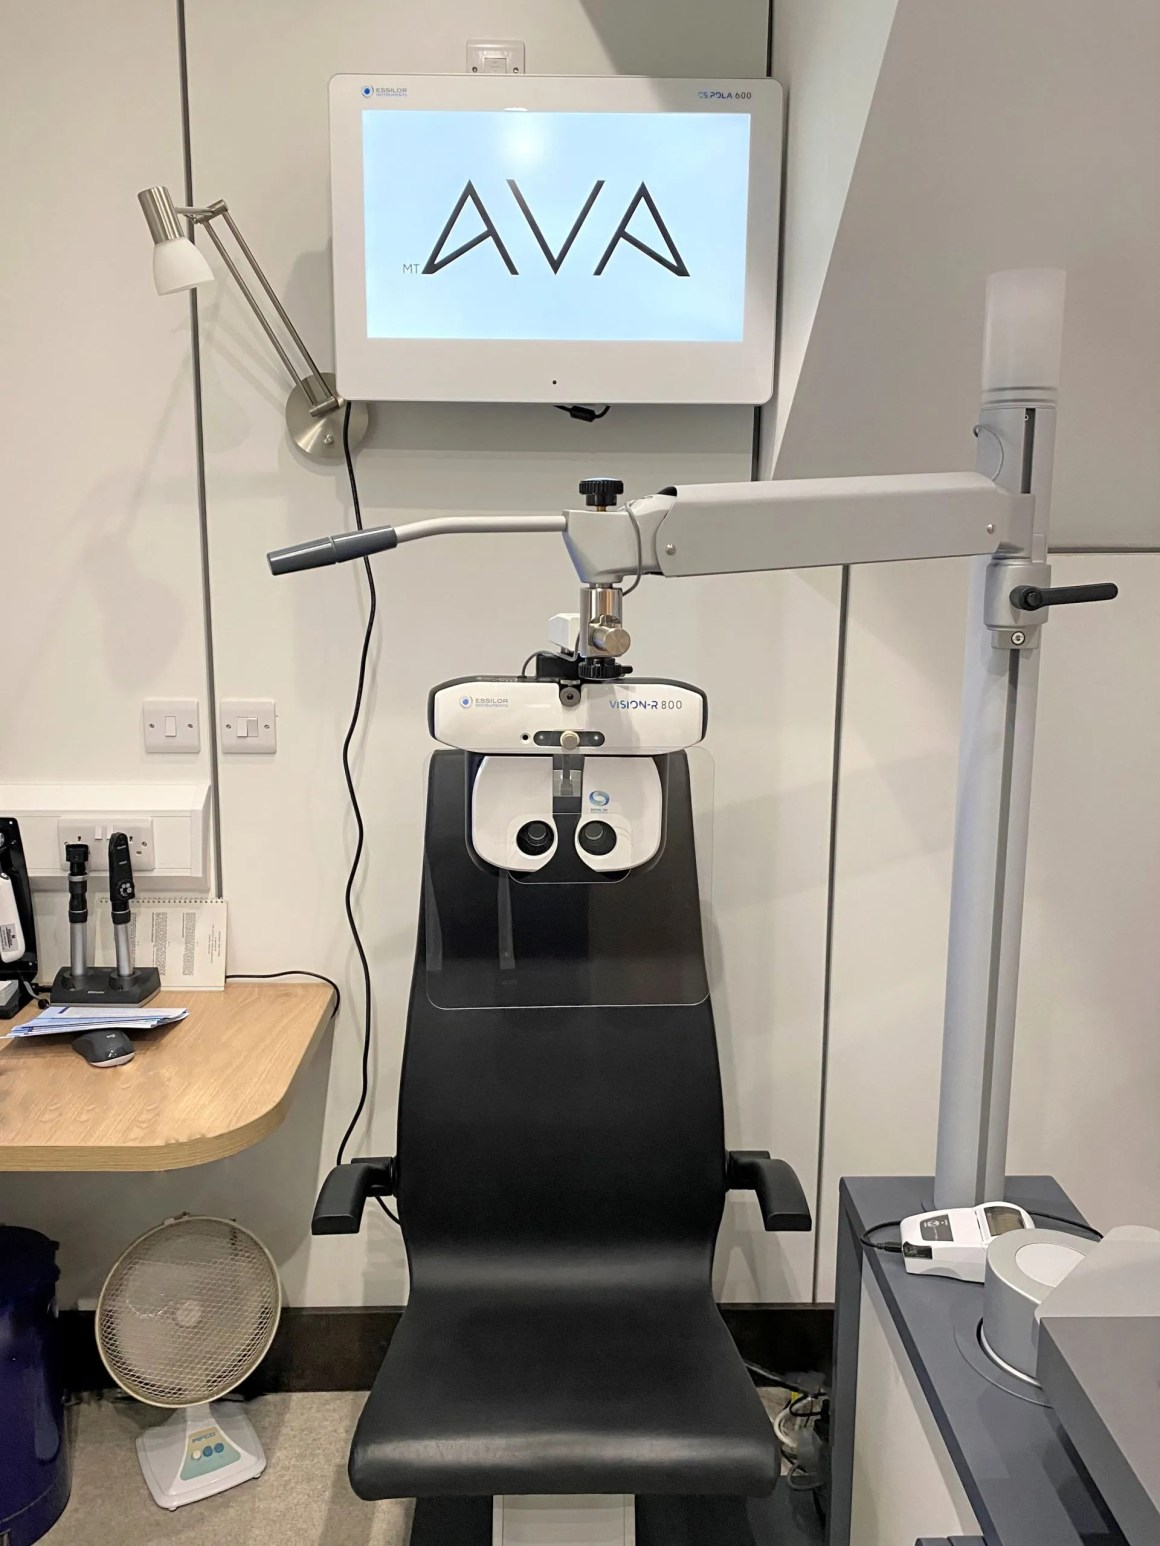 AVA sight test programme